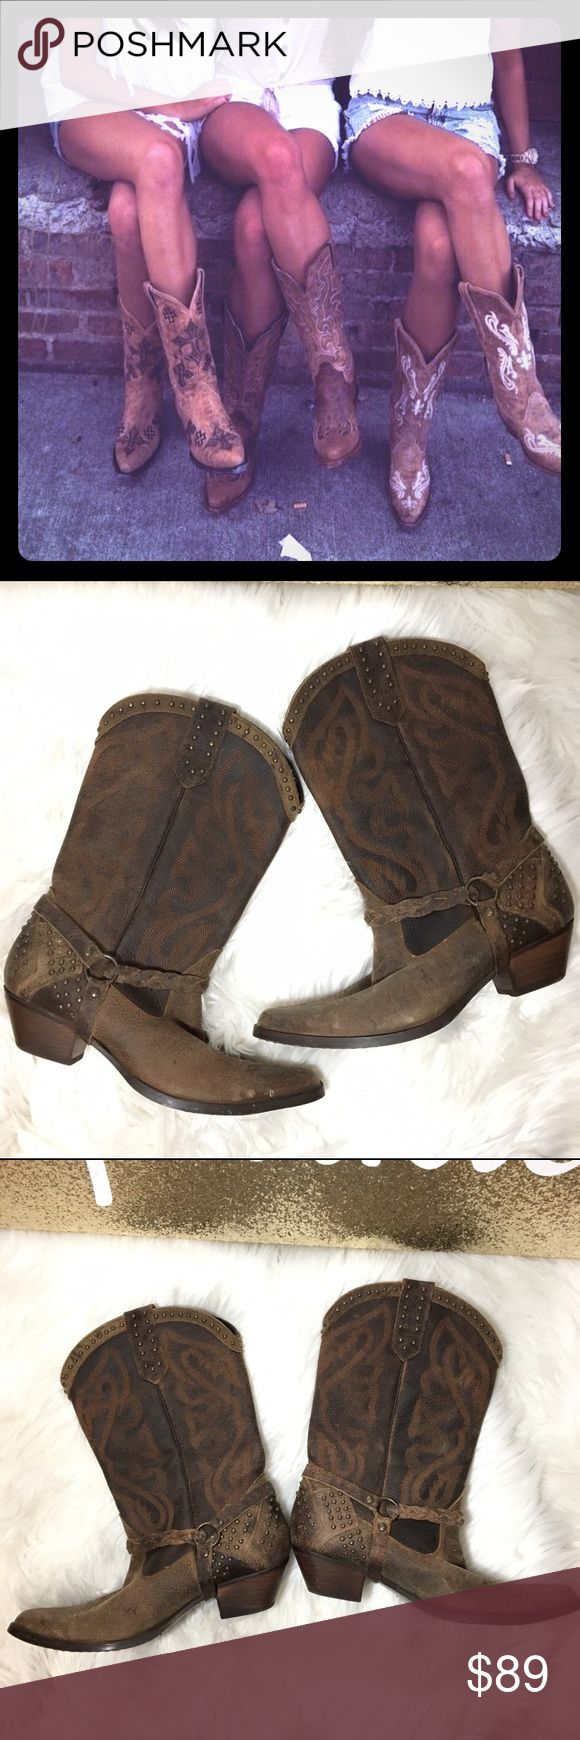 Gorgeous Oak Tree Farms Cowgirl Boots These timeless beauties are in great condition! Oak Tree Farms Shoes Heeled Boots